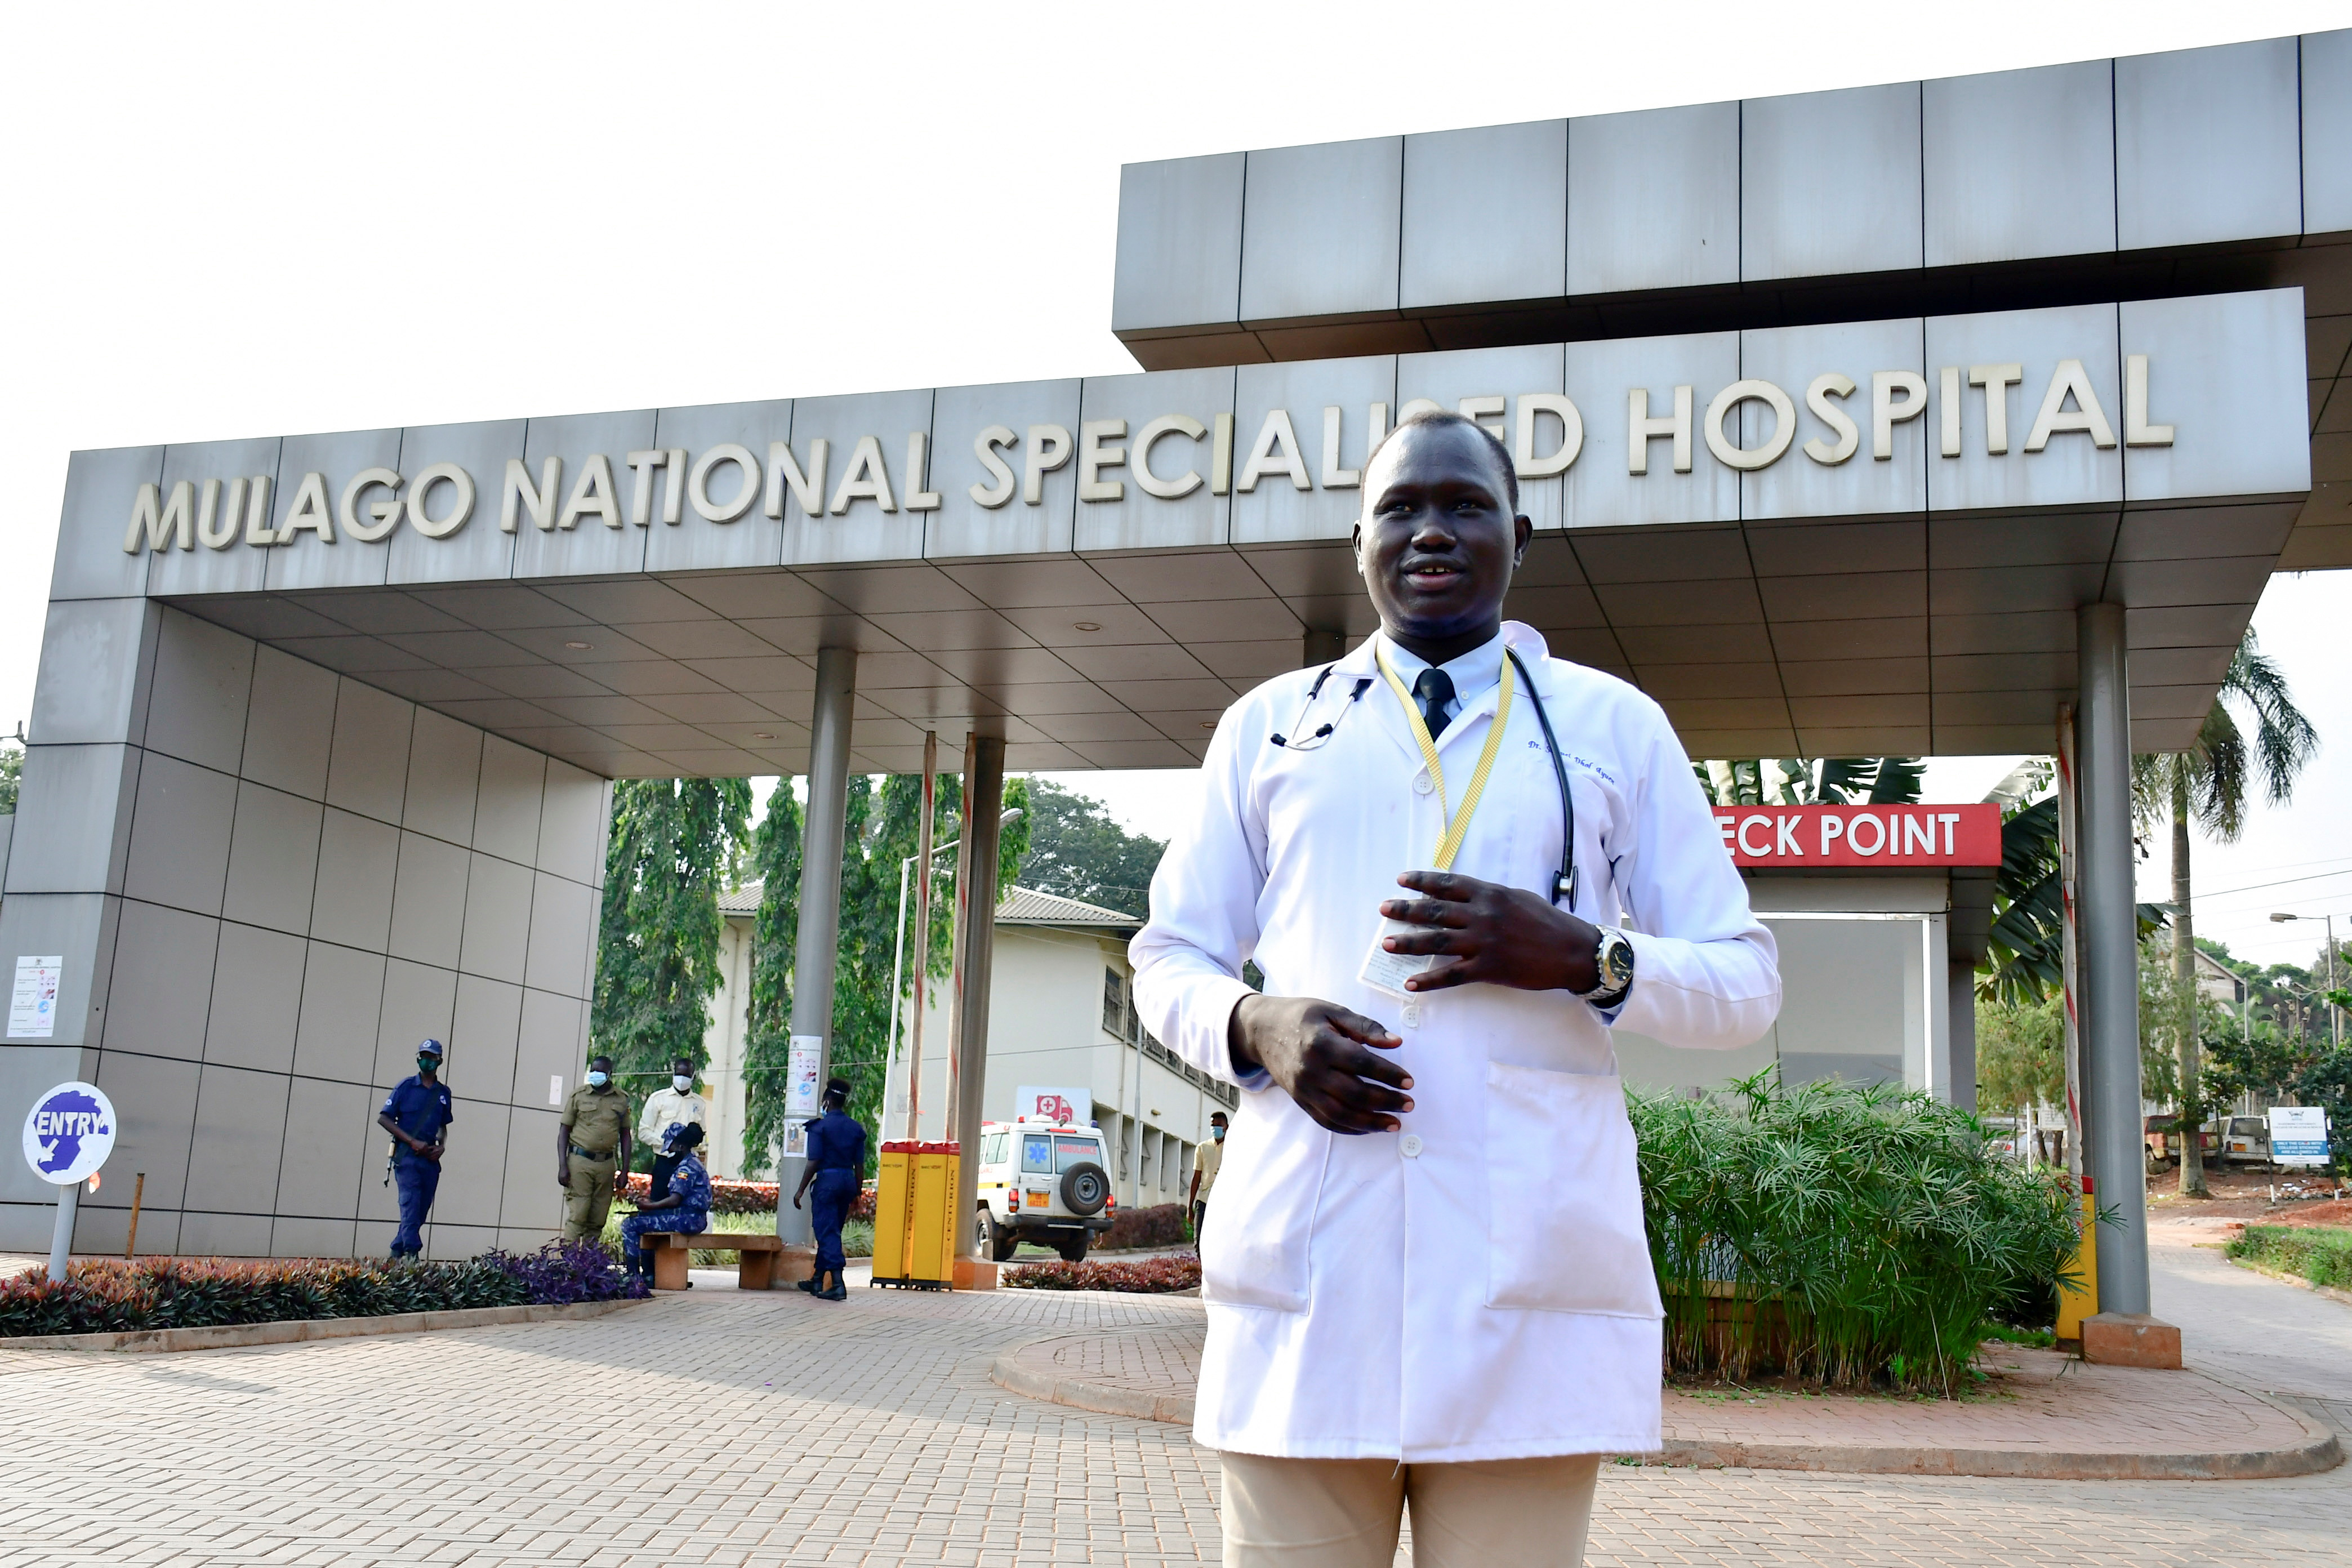 Samuel Dhol Ayeun, a trainee doctor who fled from South Sudan to Uganda, poses for a photo at the Mulago National Specialised Hospital in Kampala, Uganda June 17, 2021. Picture taken June 17, 2021. REUTERS/Abubaker Lubowa